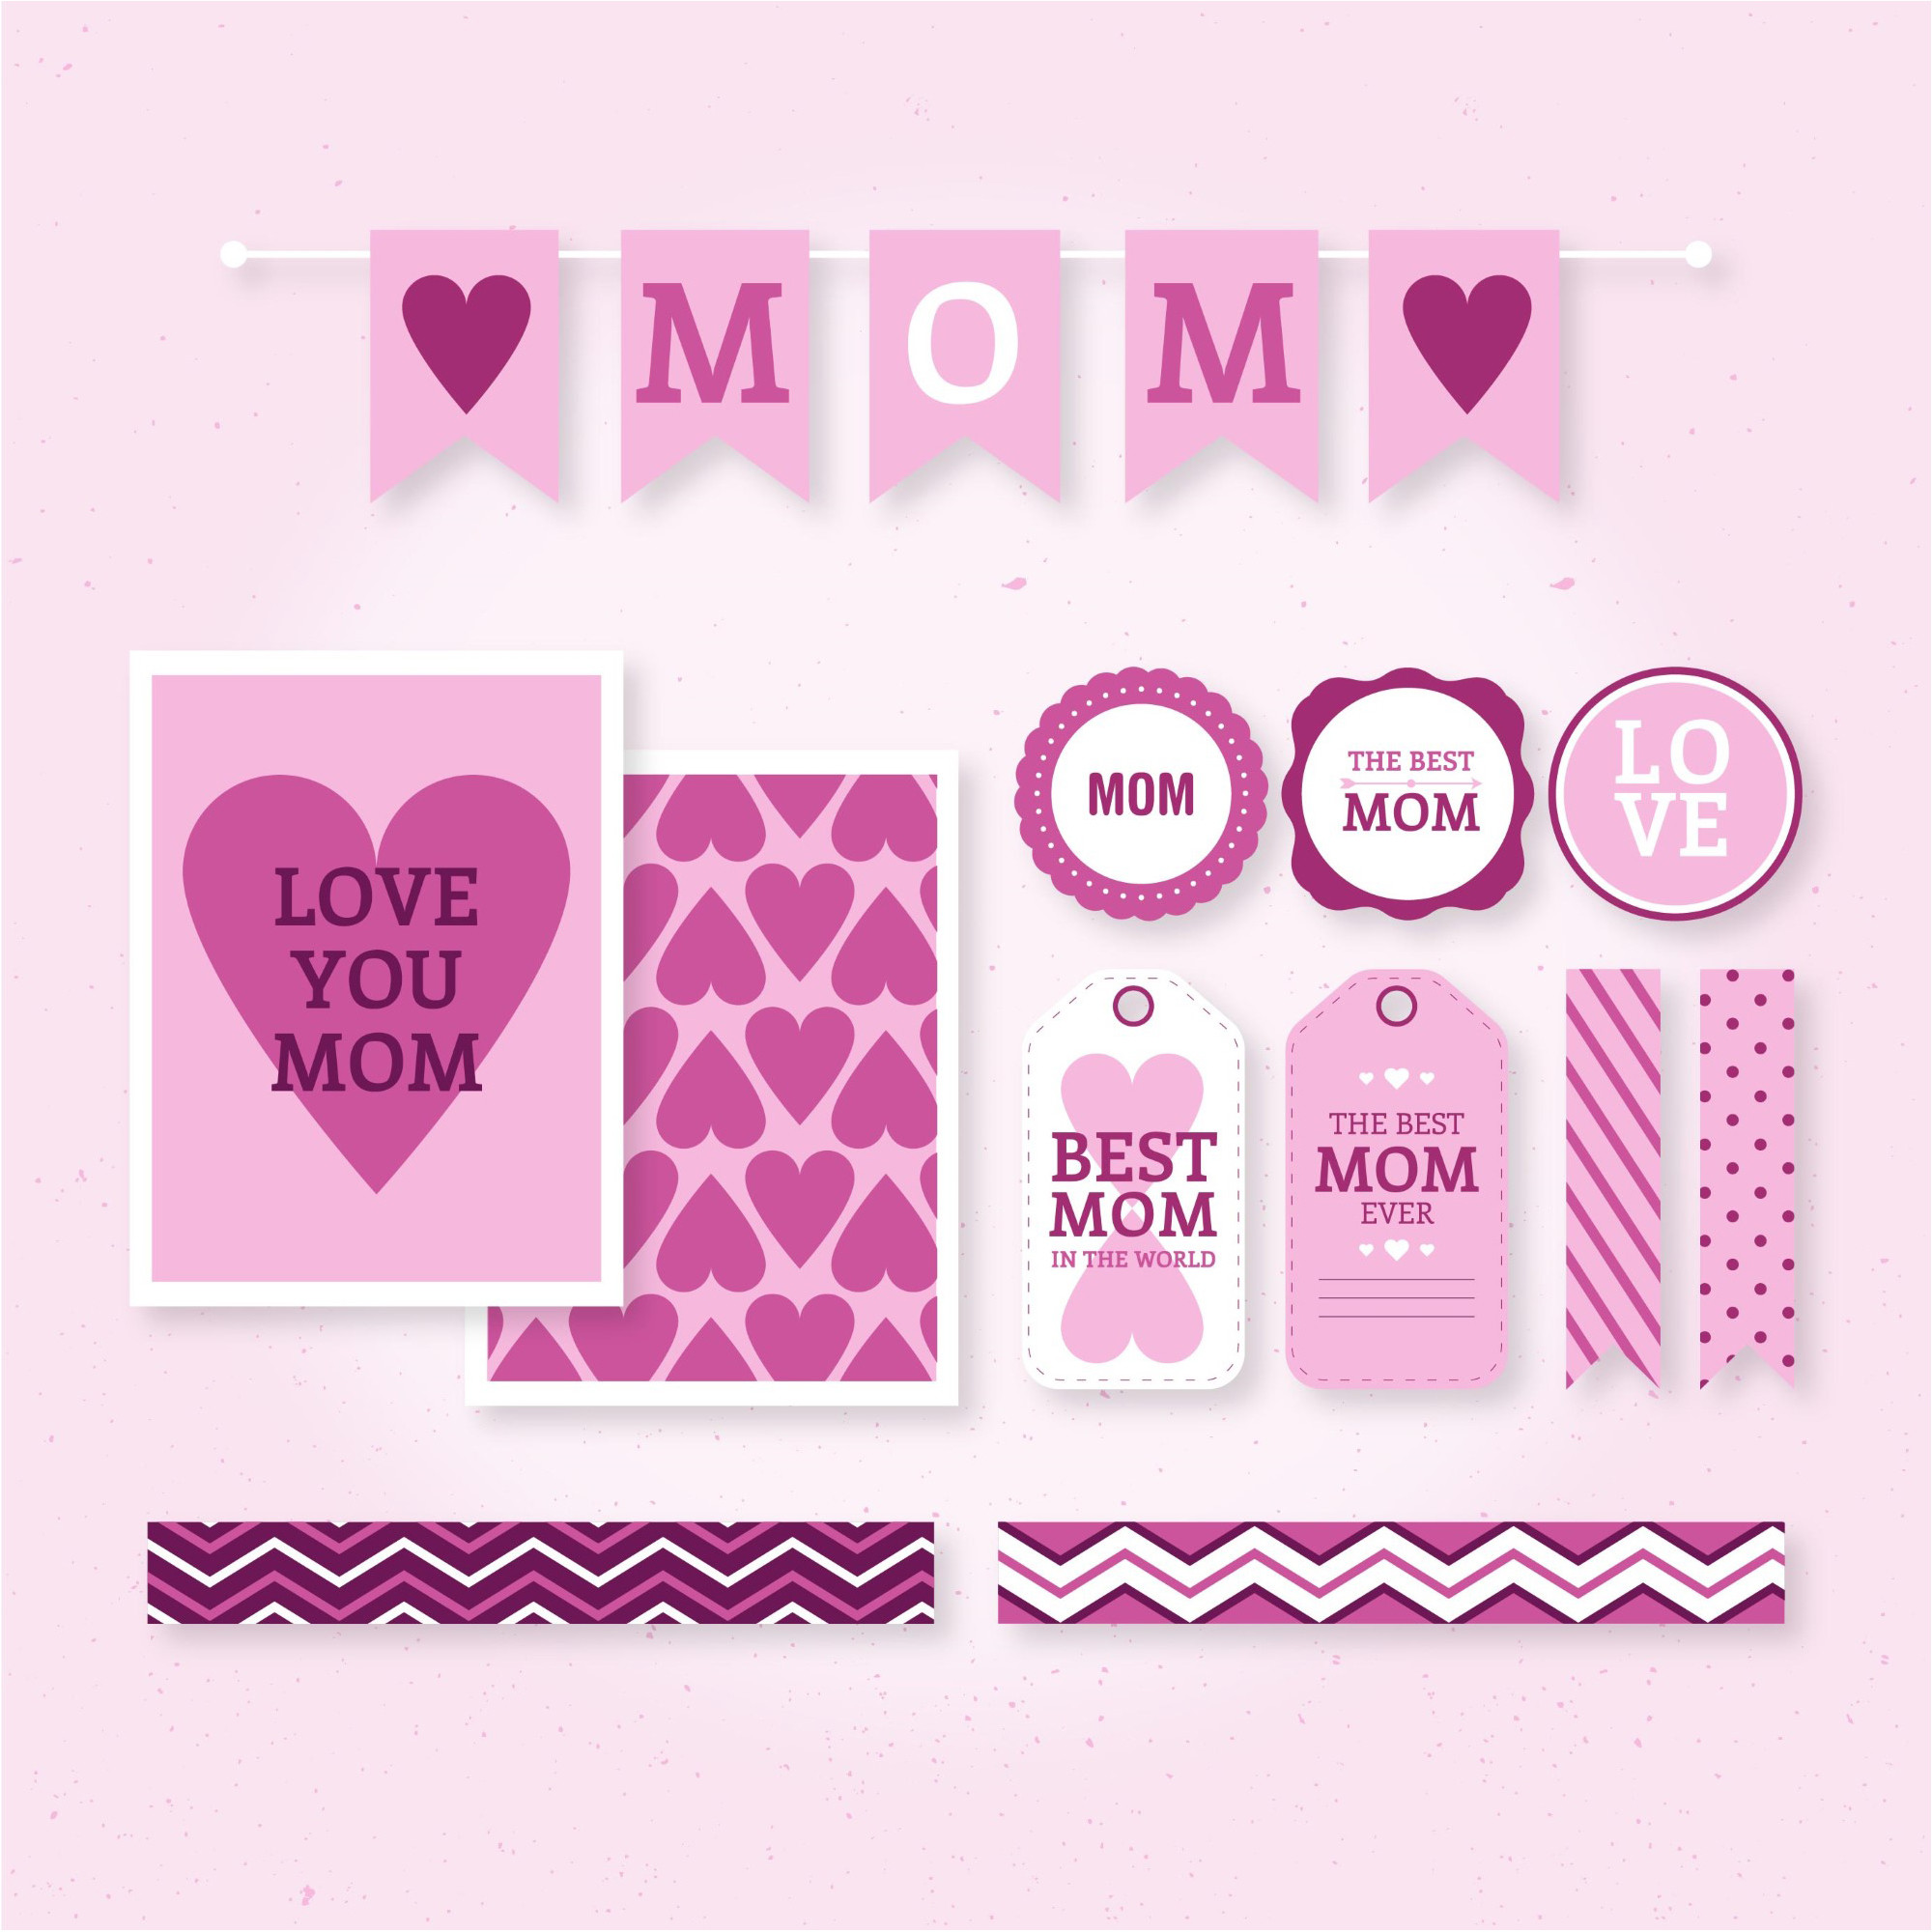 2000x2000 Love Happy Mother Day Vector & Wallpaper background